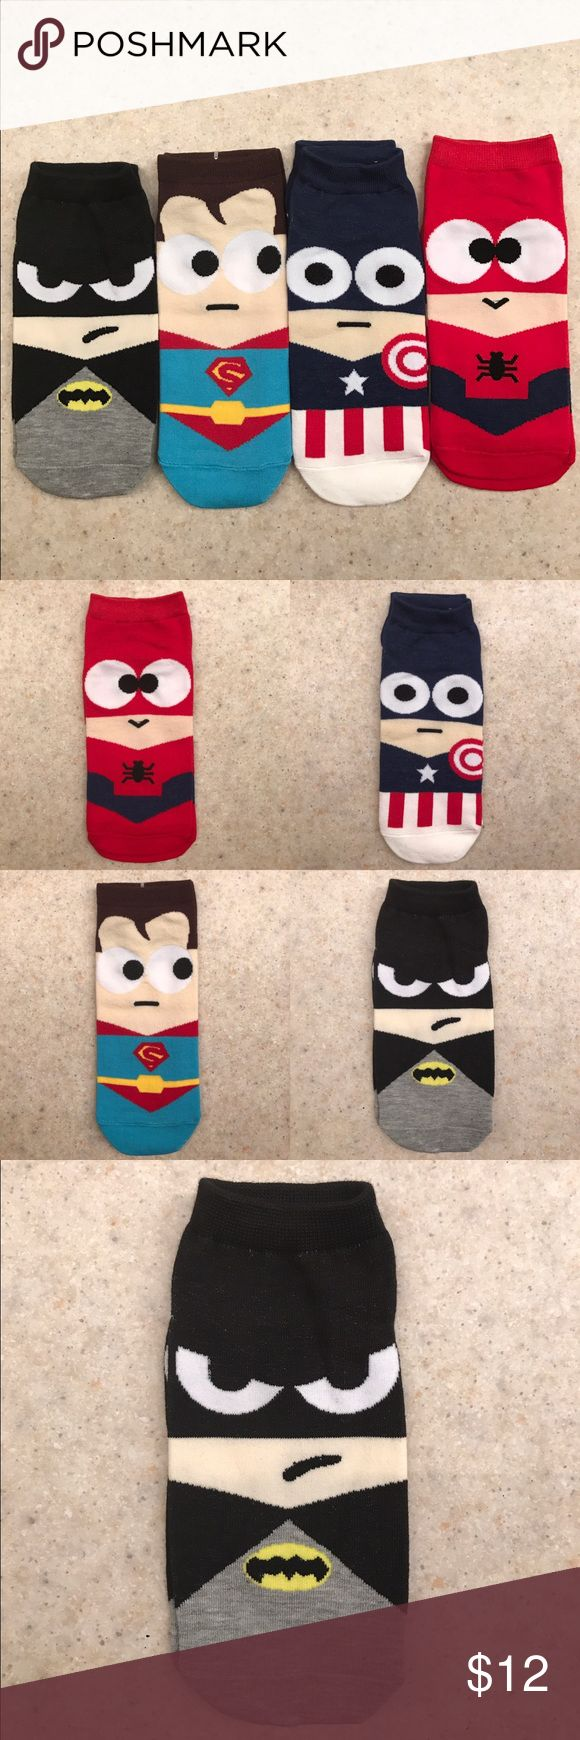 ❣️ALL 4 UNISEX SUPERHERO HARAJUKU SOCKS❣️ ❣️COOL UNISEX HARAJUKU SUPERHERO SOCKS❣️PRICE IS FRIM❣️15%OFF WHEN YOU BUNDLE❣️   BATMAN SUPERMAN SPIDERMAN CAPTIN AMERICA  Material:Cotton Gender:Unisex US Size:5.5-10 Thickness: Standard  Brand Name:Jeseca Underwear & Socks Casual Socks